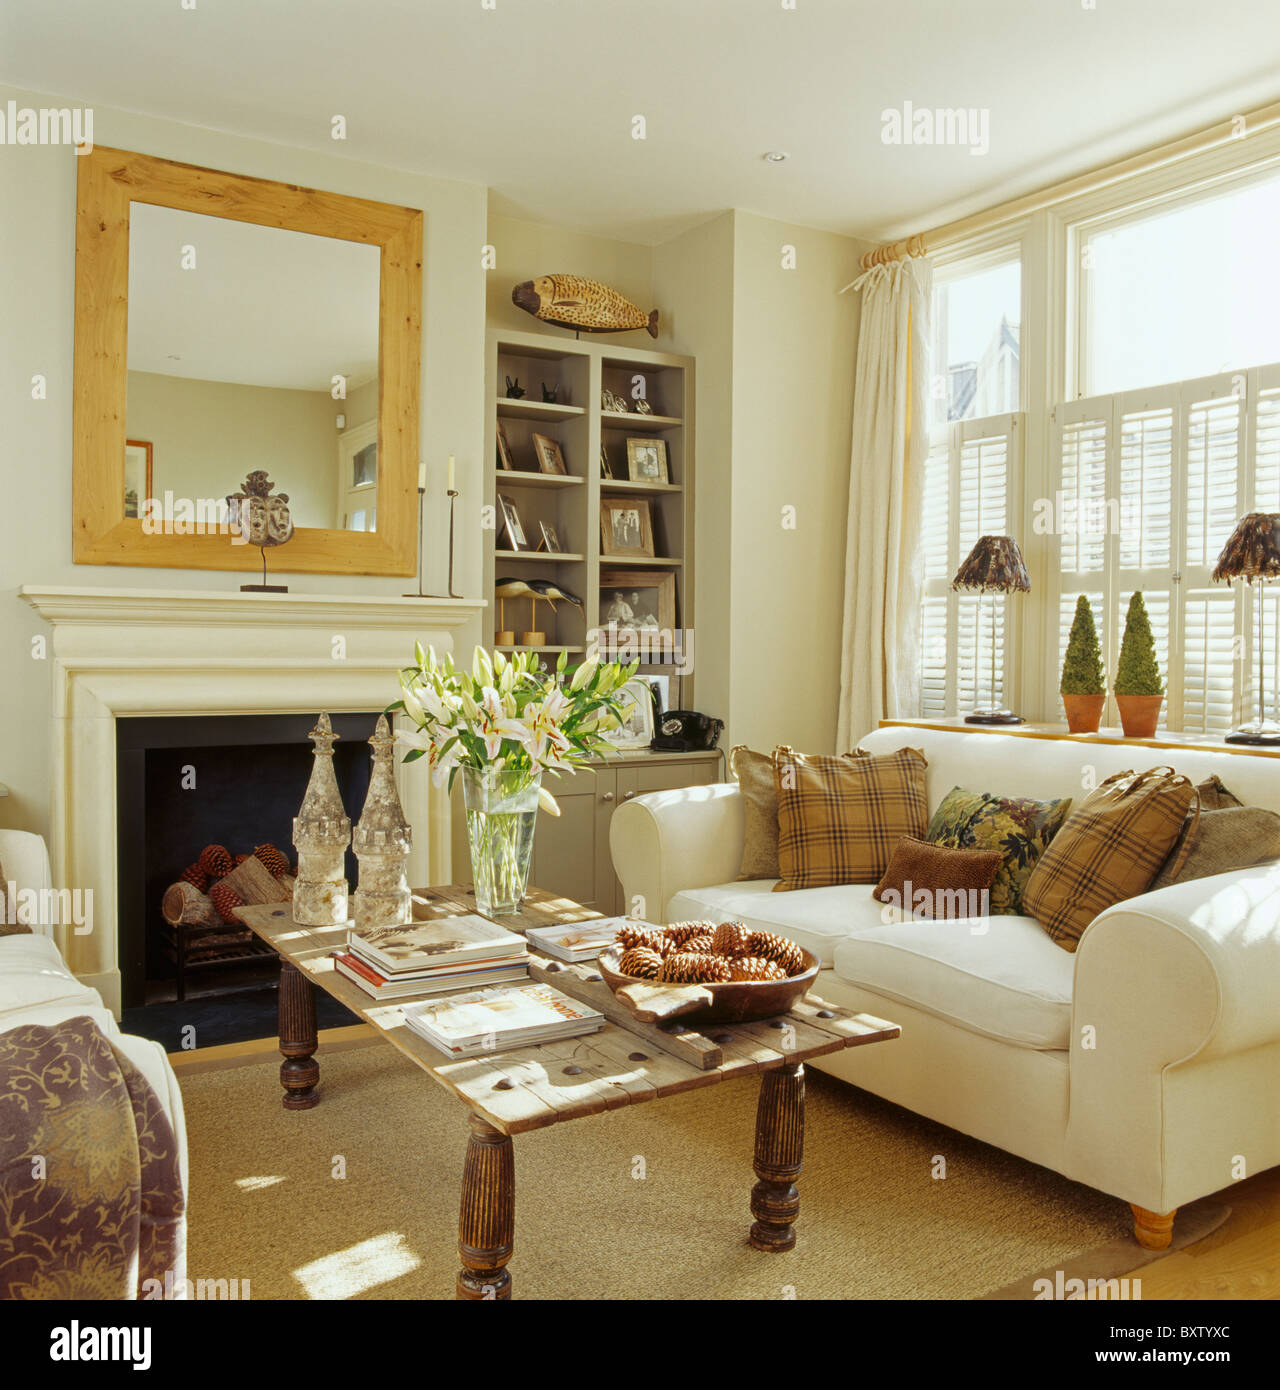 Rustic Wood Table In Front Of Cream Sofa With Brown Cushions In Cream  Living Room With Large Mirror Above Fireplace Part 28